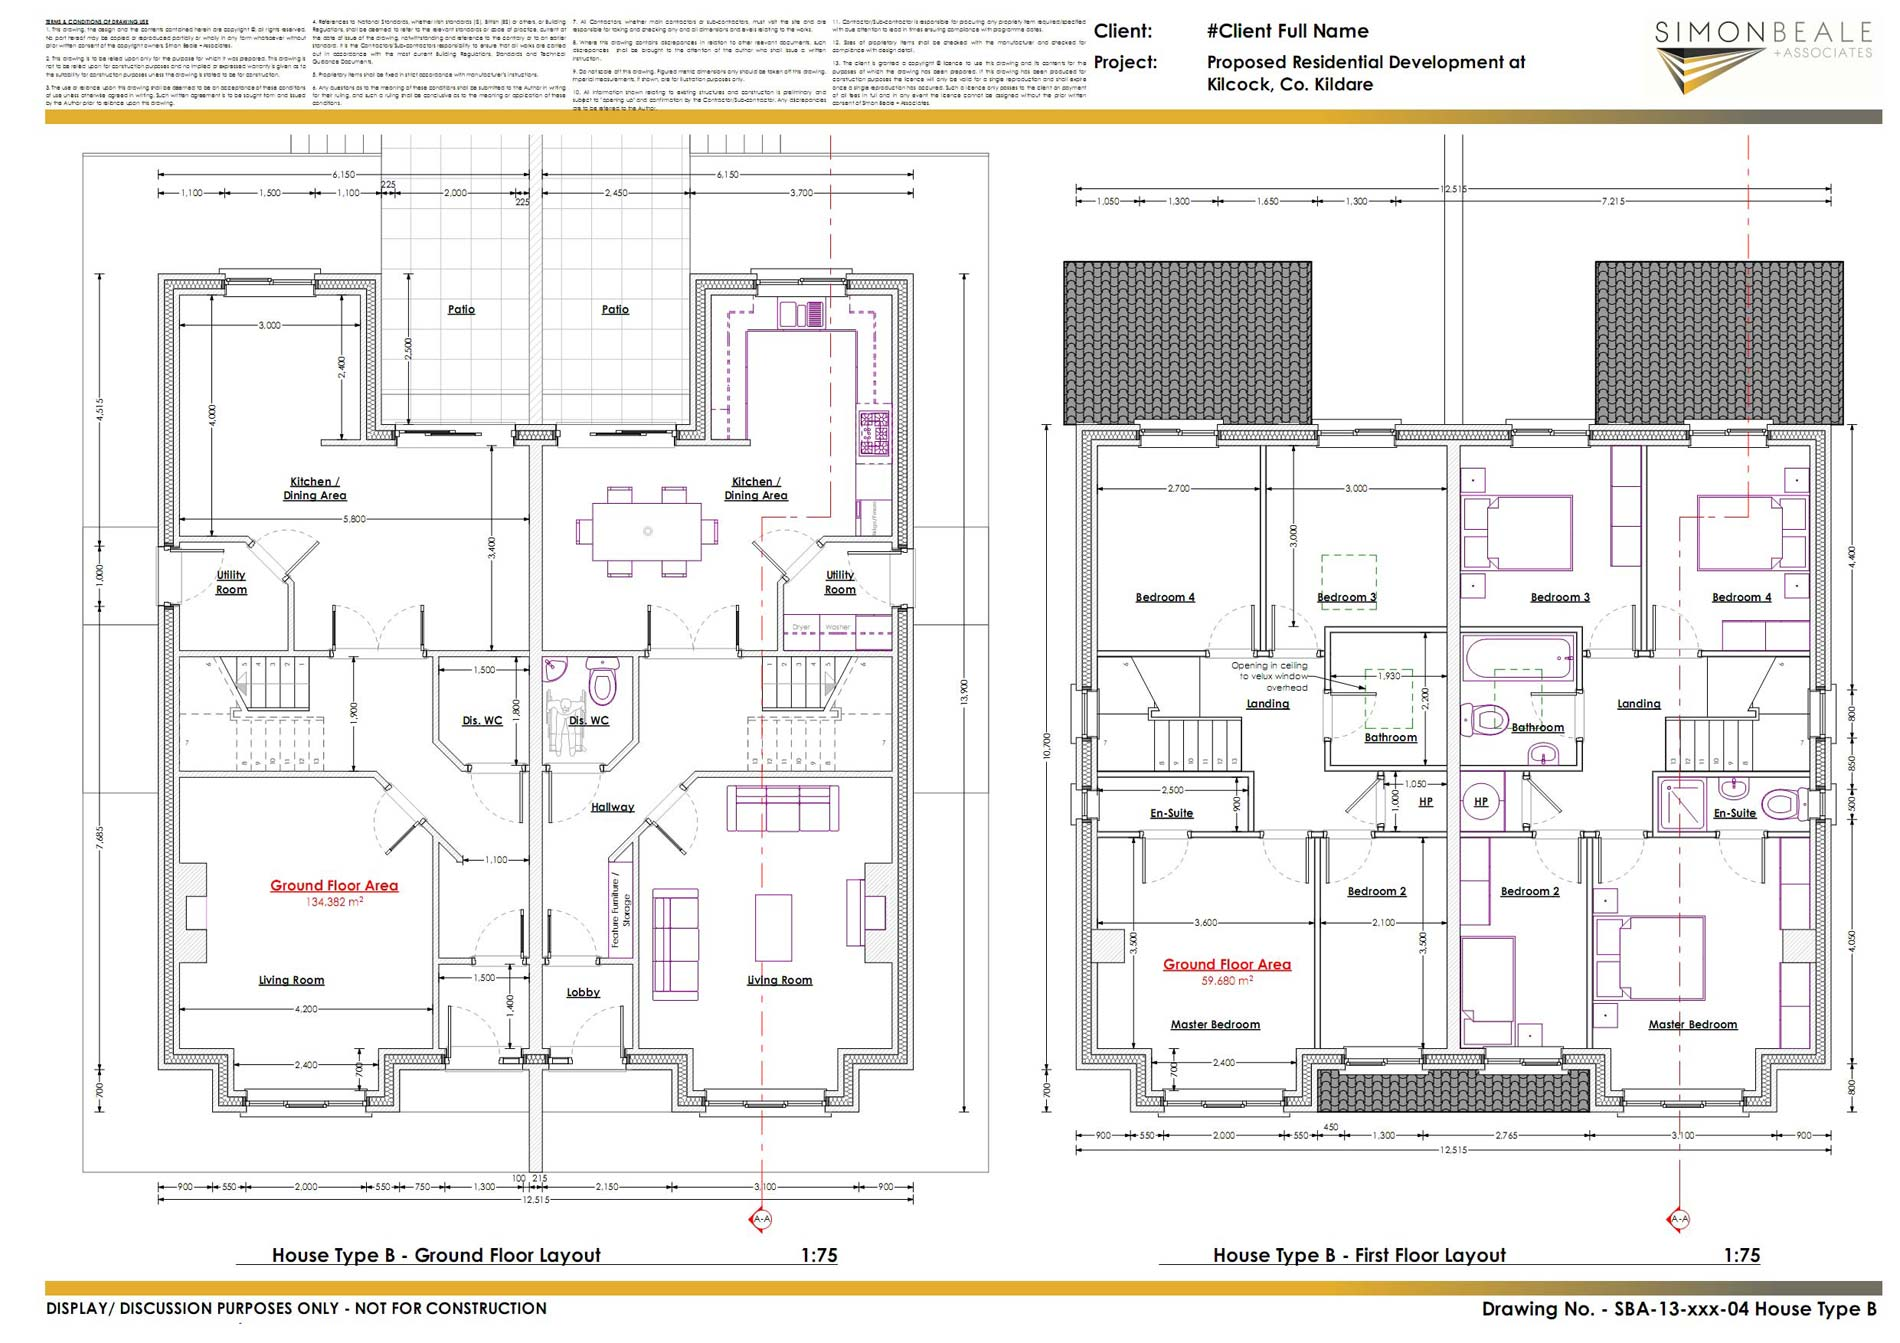 04 House Type B Floor Plans_pagenumber.001